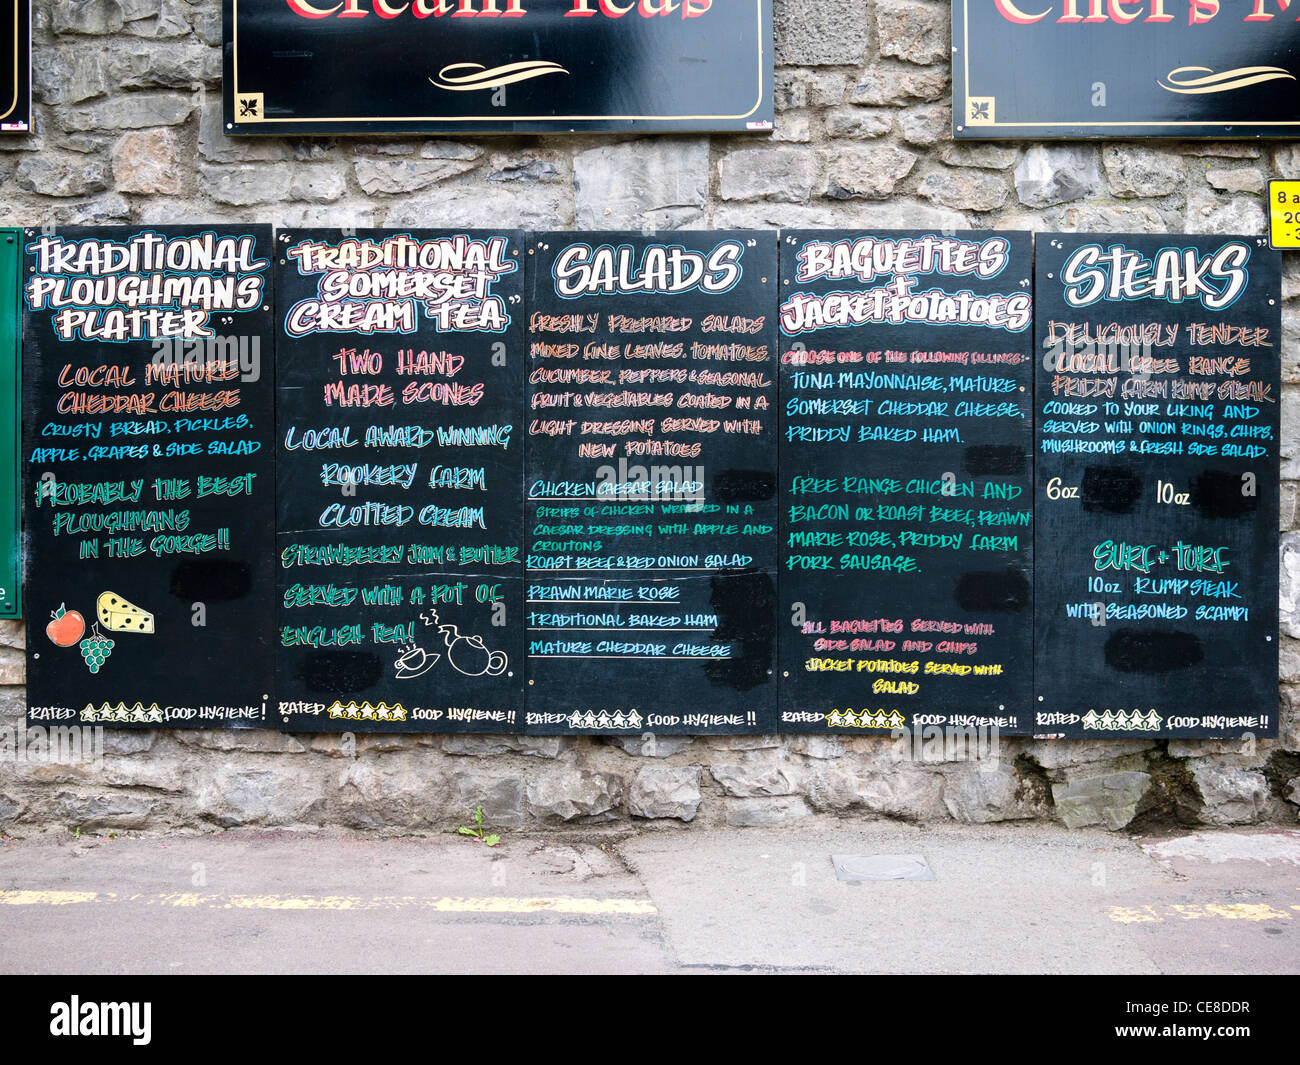 A British pub sign listing the food being served within at the tourist attraction of Cheddar Gorge, Somerset, England. - Stock Image